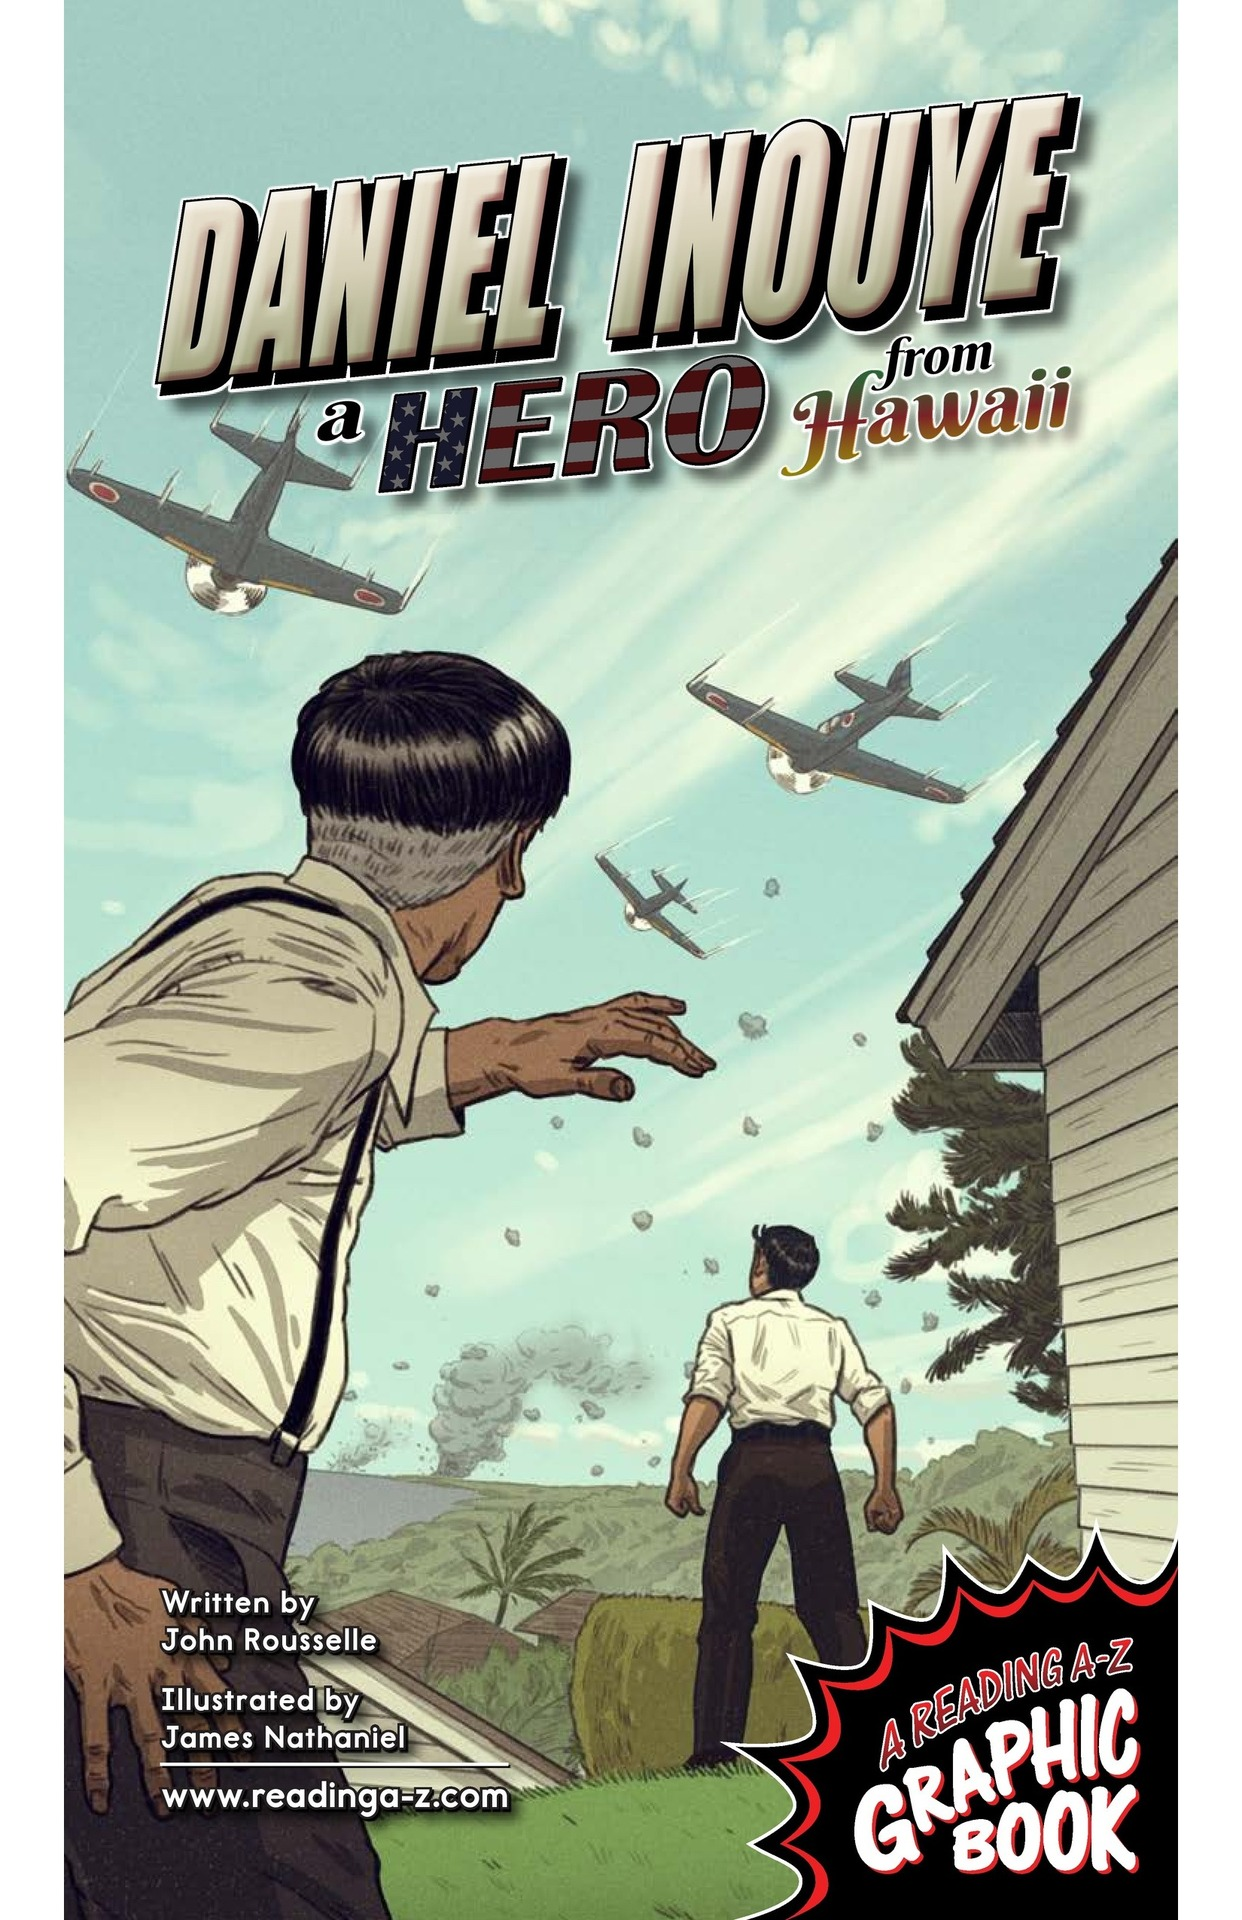 Book Preview For Daniel Inouye: A Hero from Hawaii Page 1